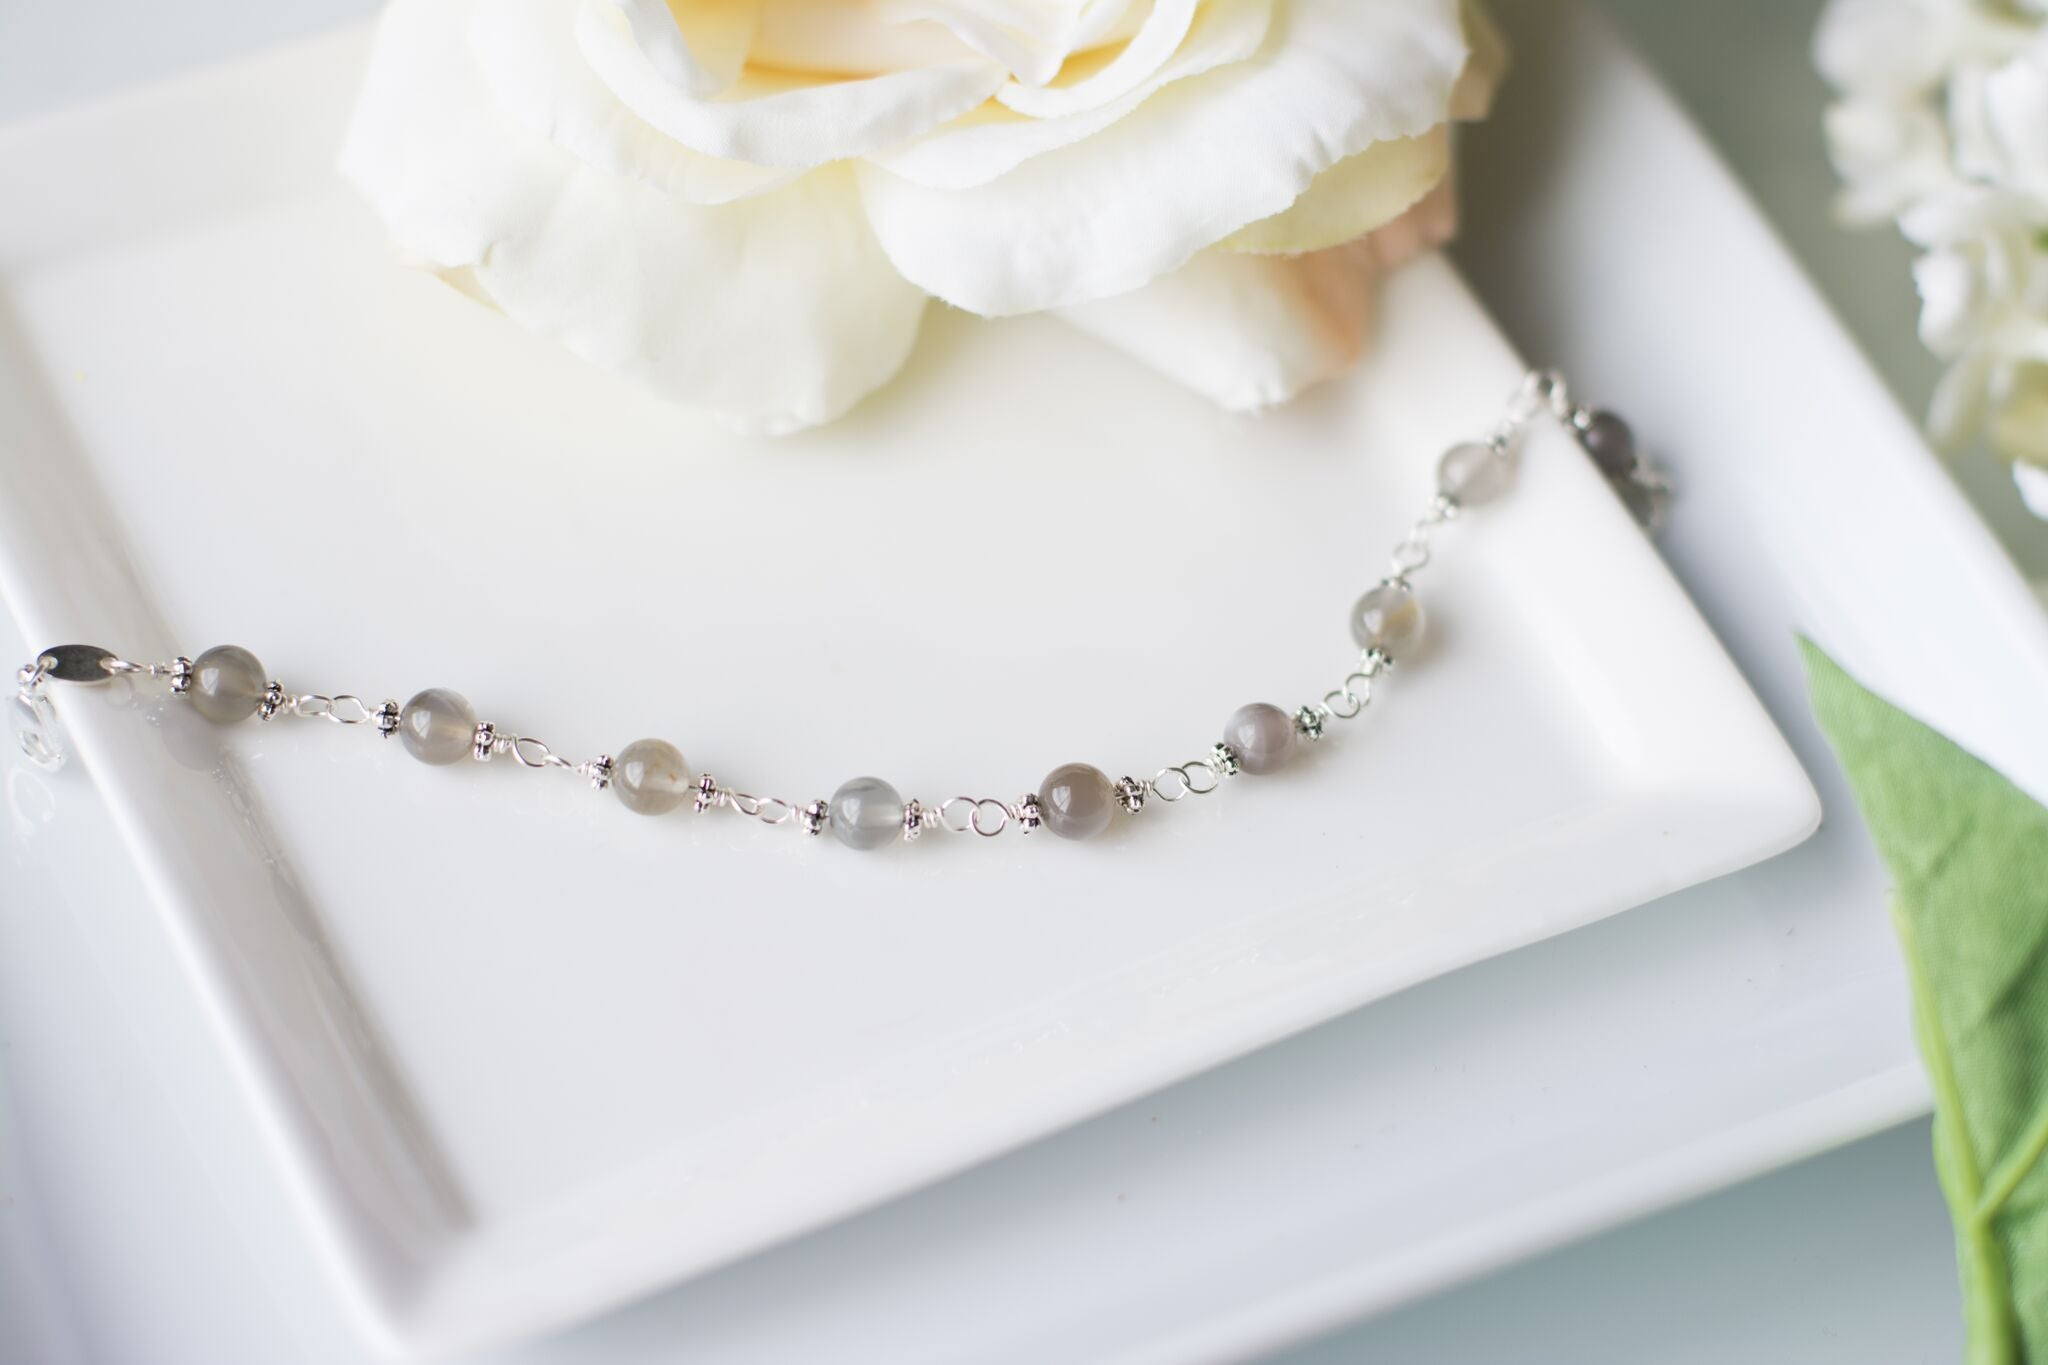 Mother of the Groom Gift - Handmade Sterling Silver and Grey Moonstone Bracelet - Swanky Collection